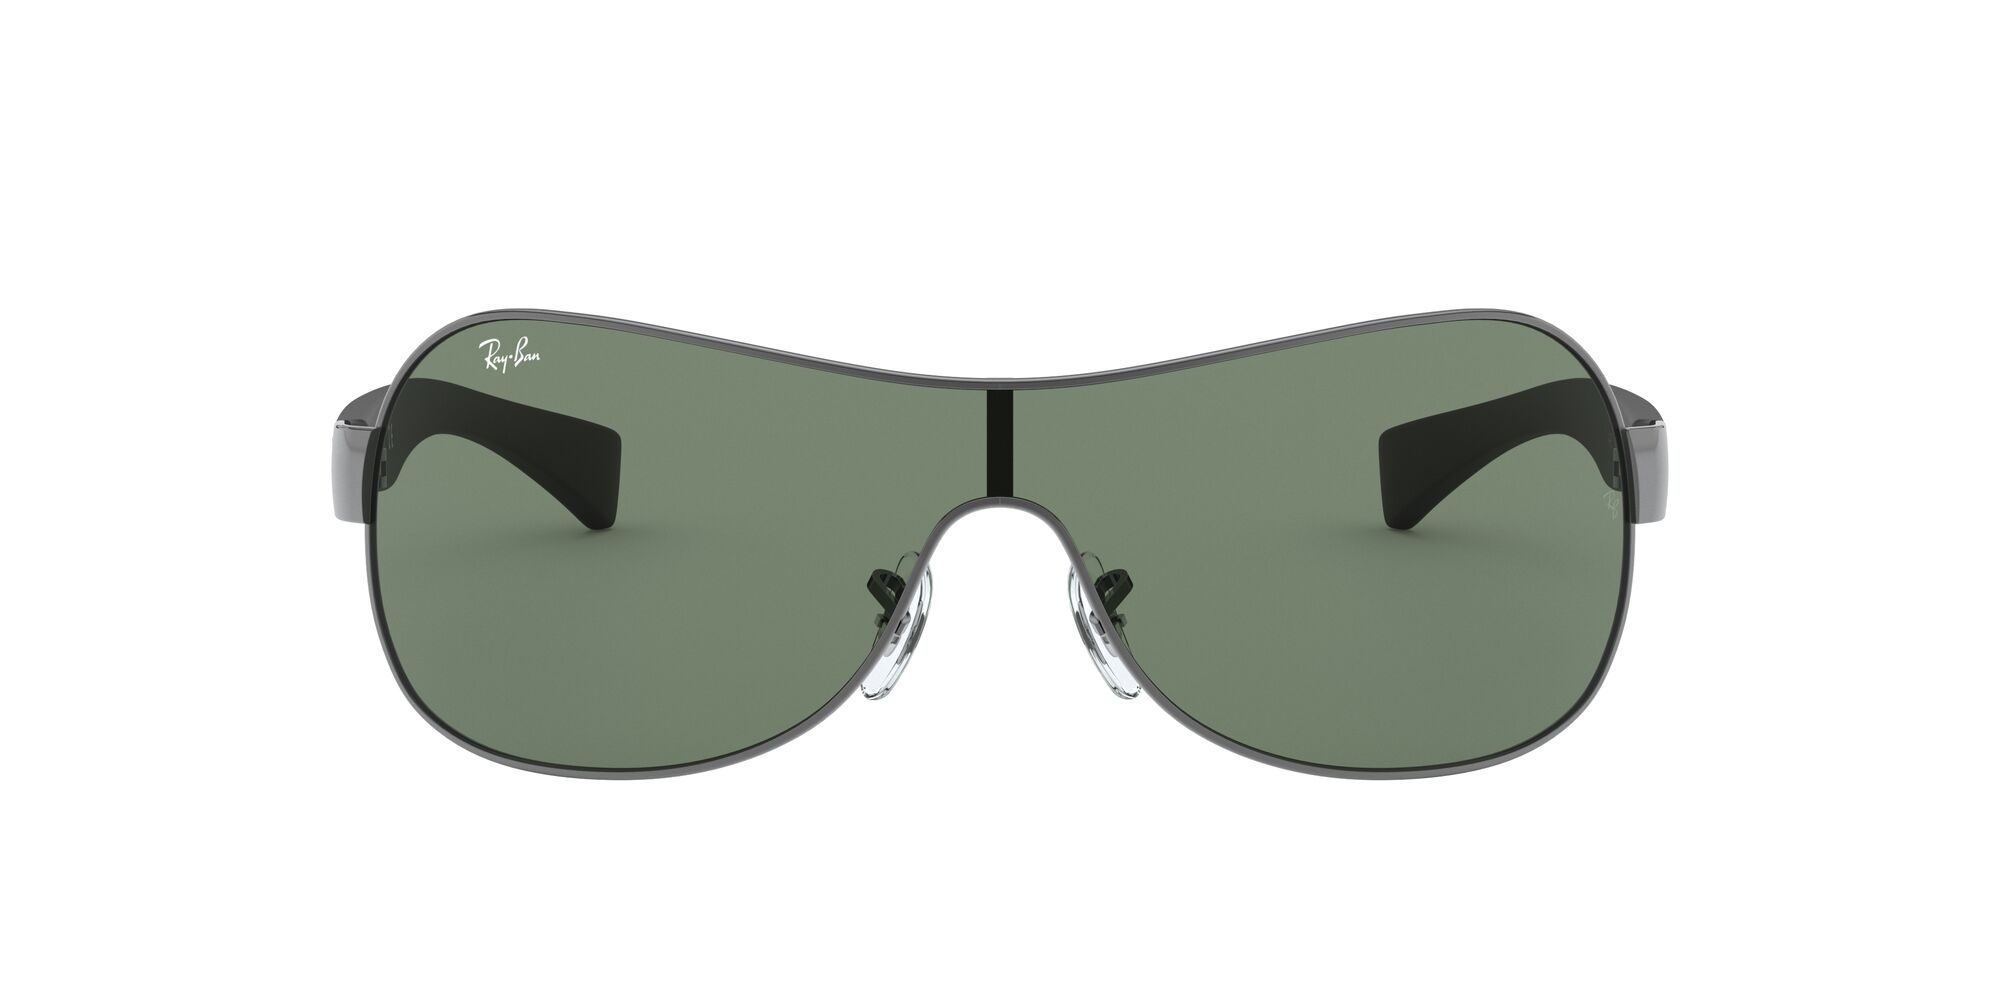 Front Ray-Ban Ray-Ban 0RB3471 004/71 32/0 Grijs/Groen